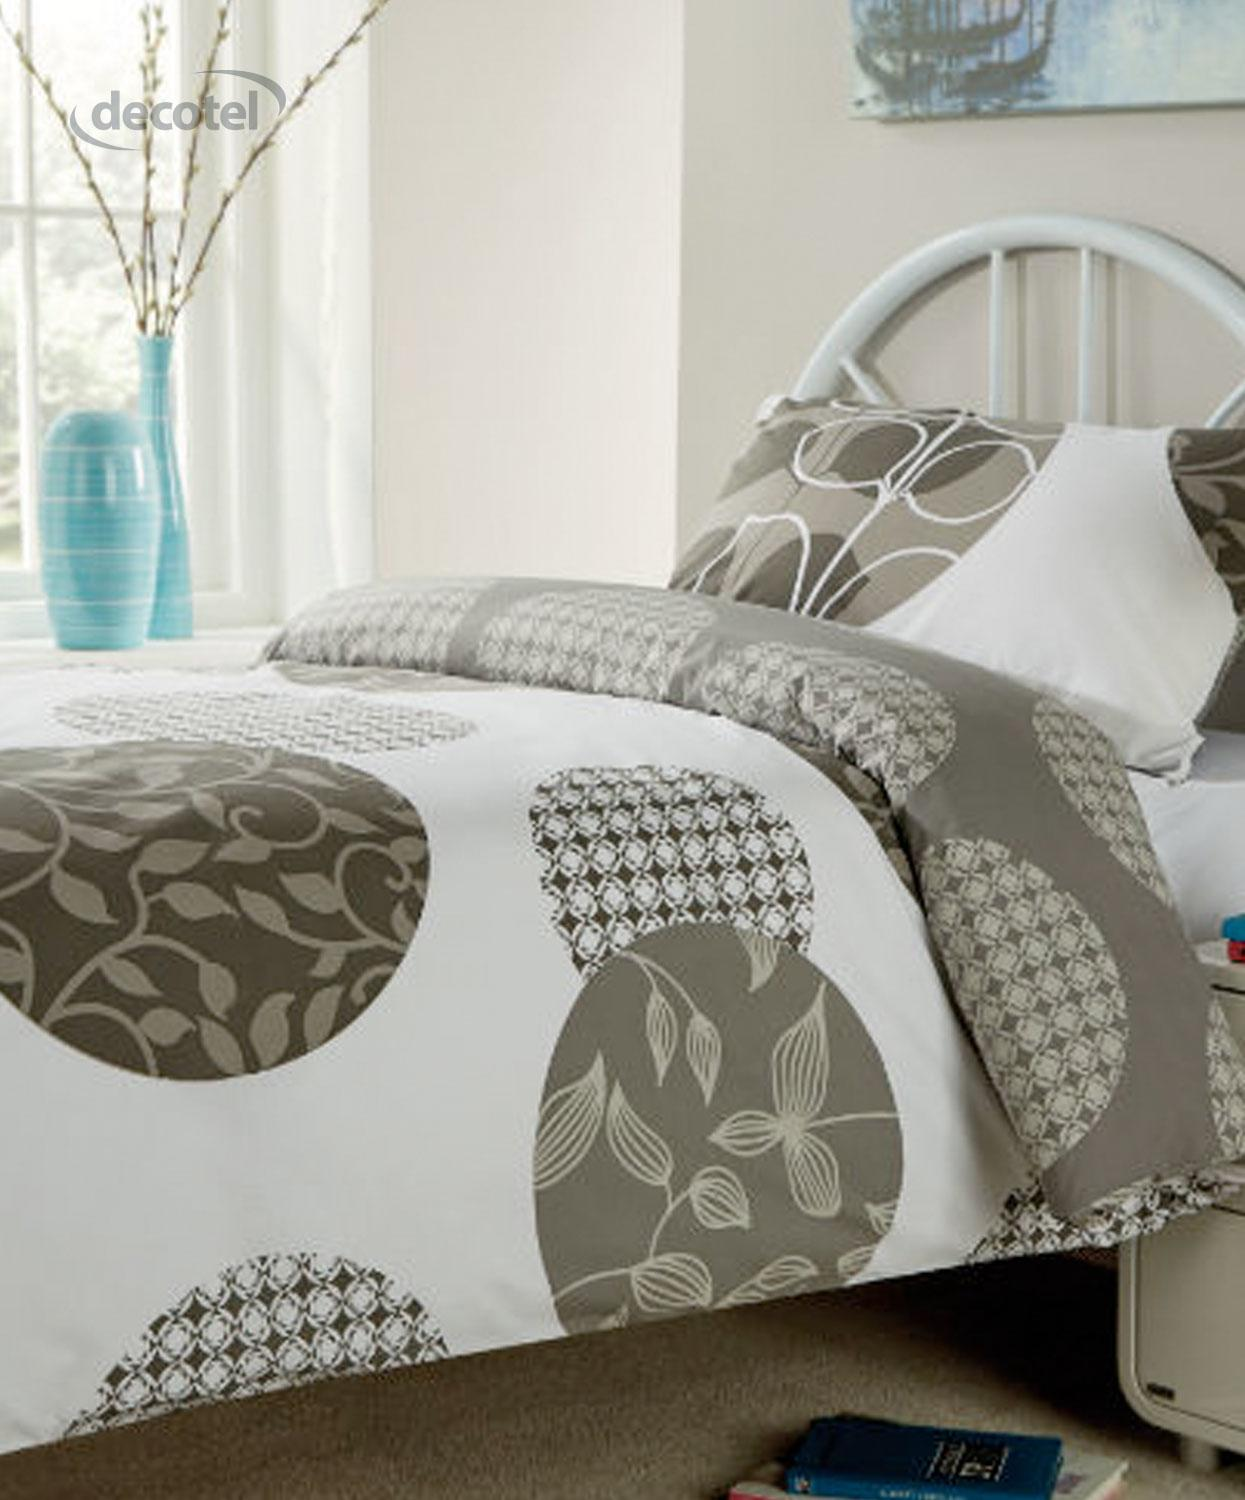 Woodland Duvet Cover in grey